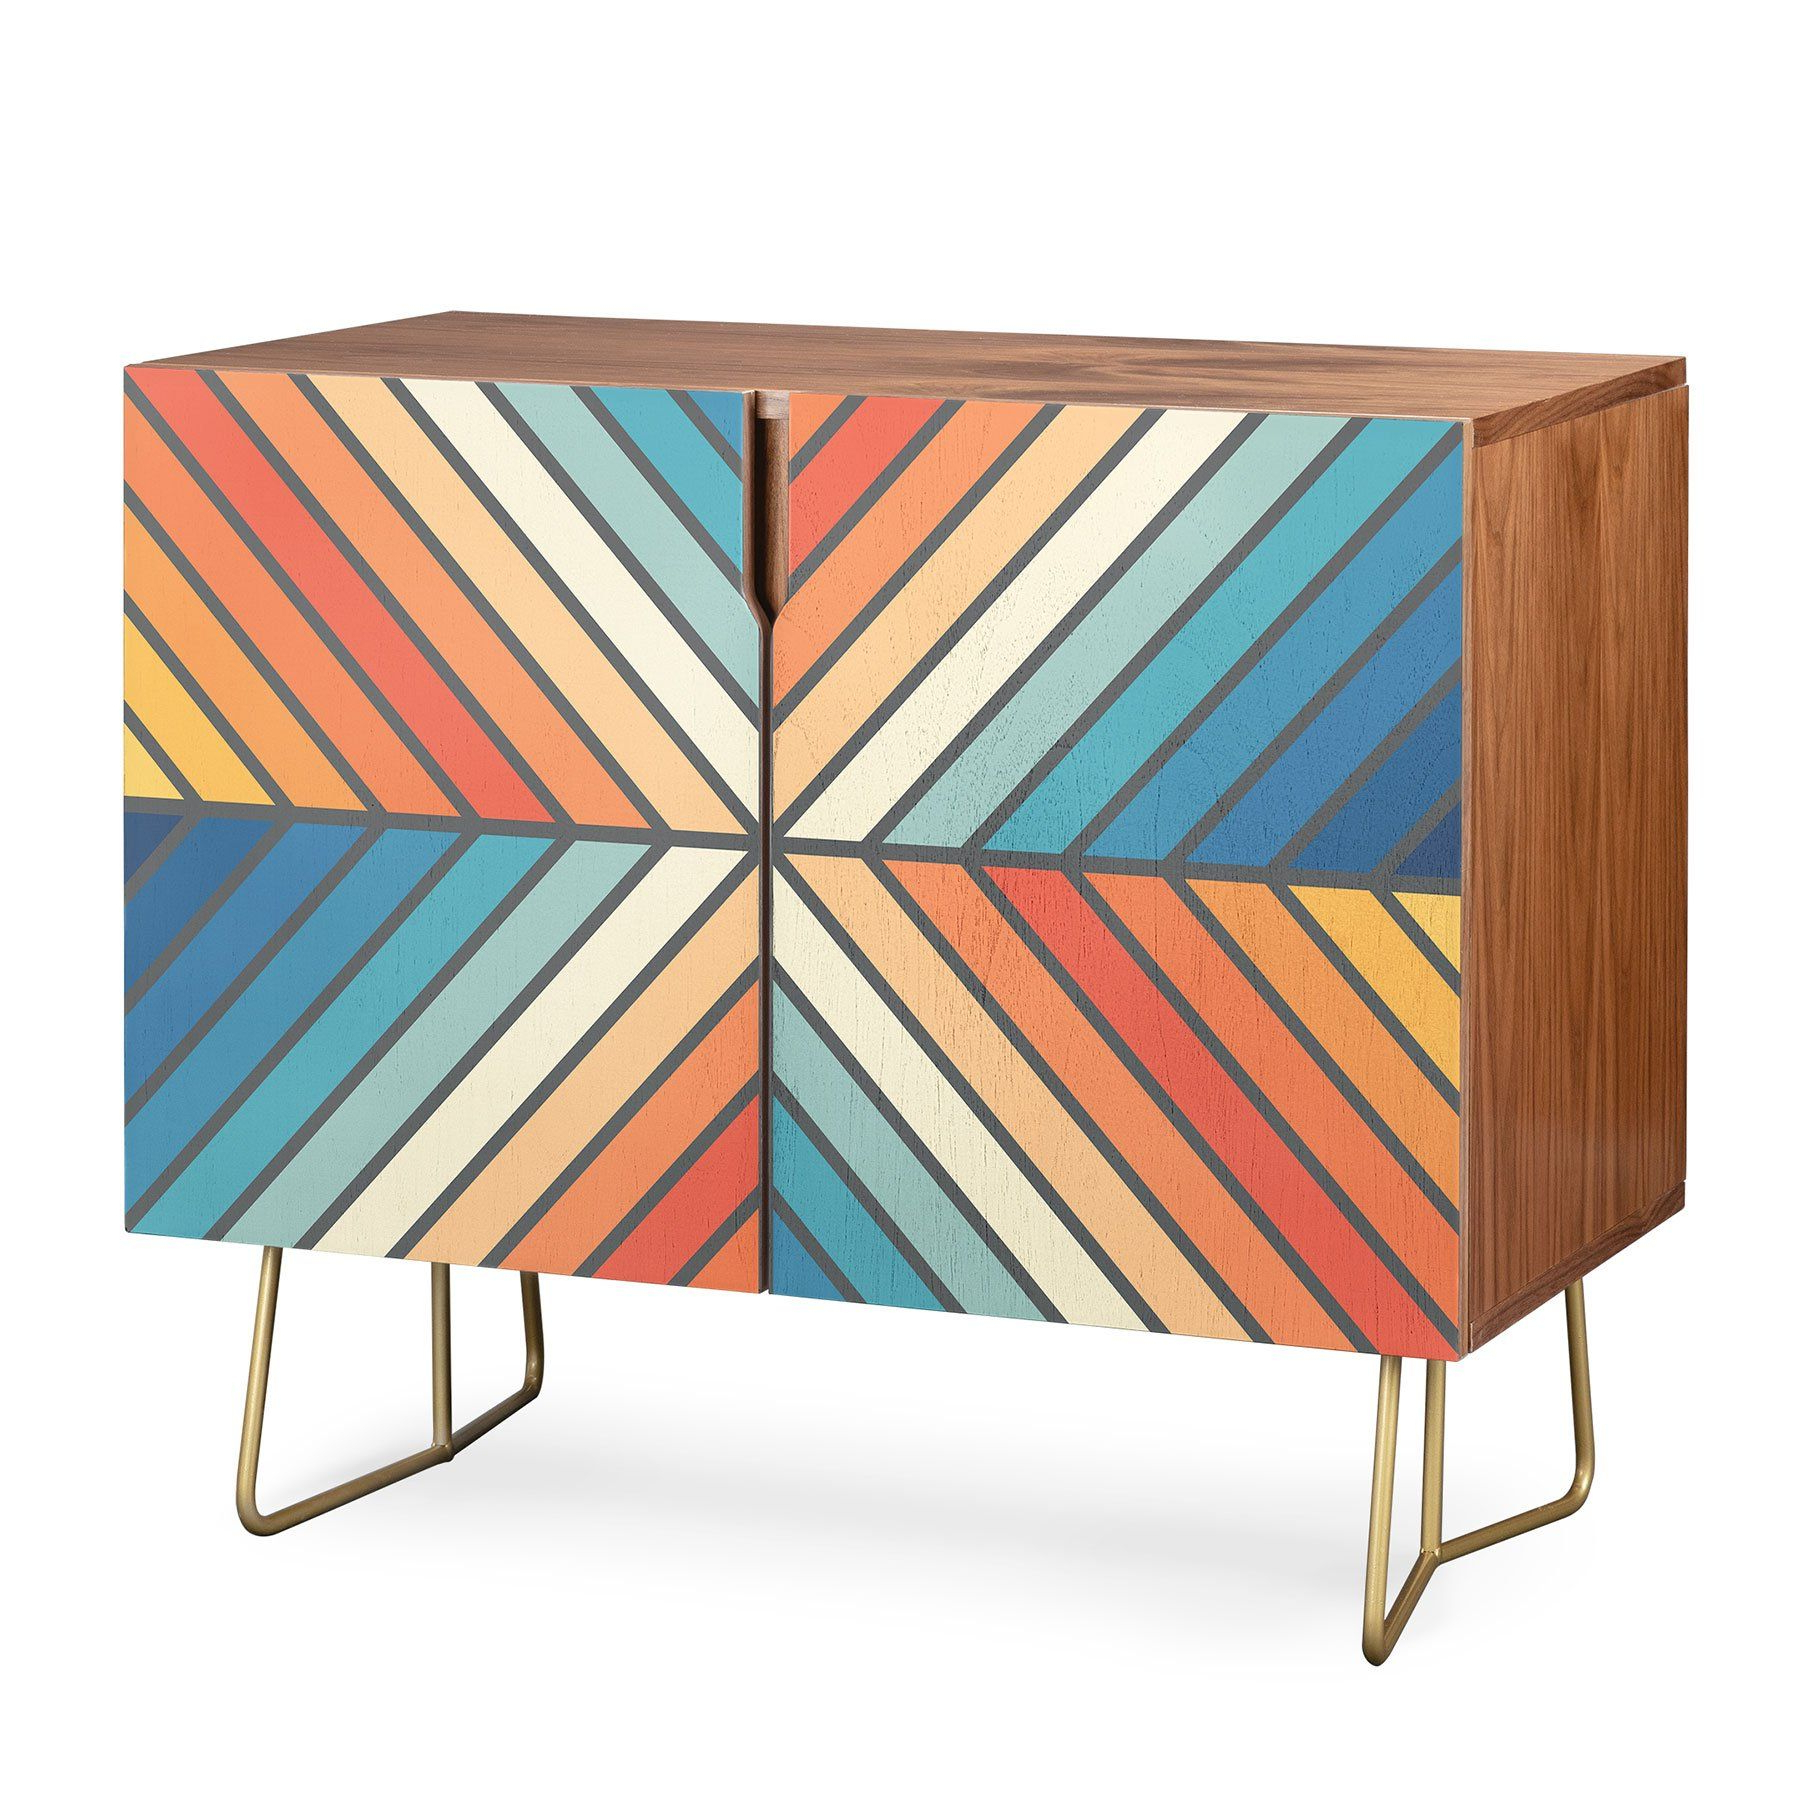 Fimbis Celebration 1 Credenza | Home Products & Decoration Throughout Blush Deco Credenzas (View 9 of 20)